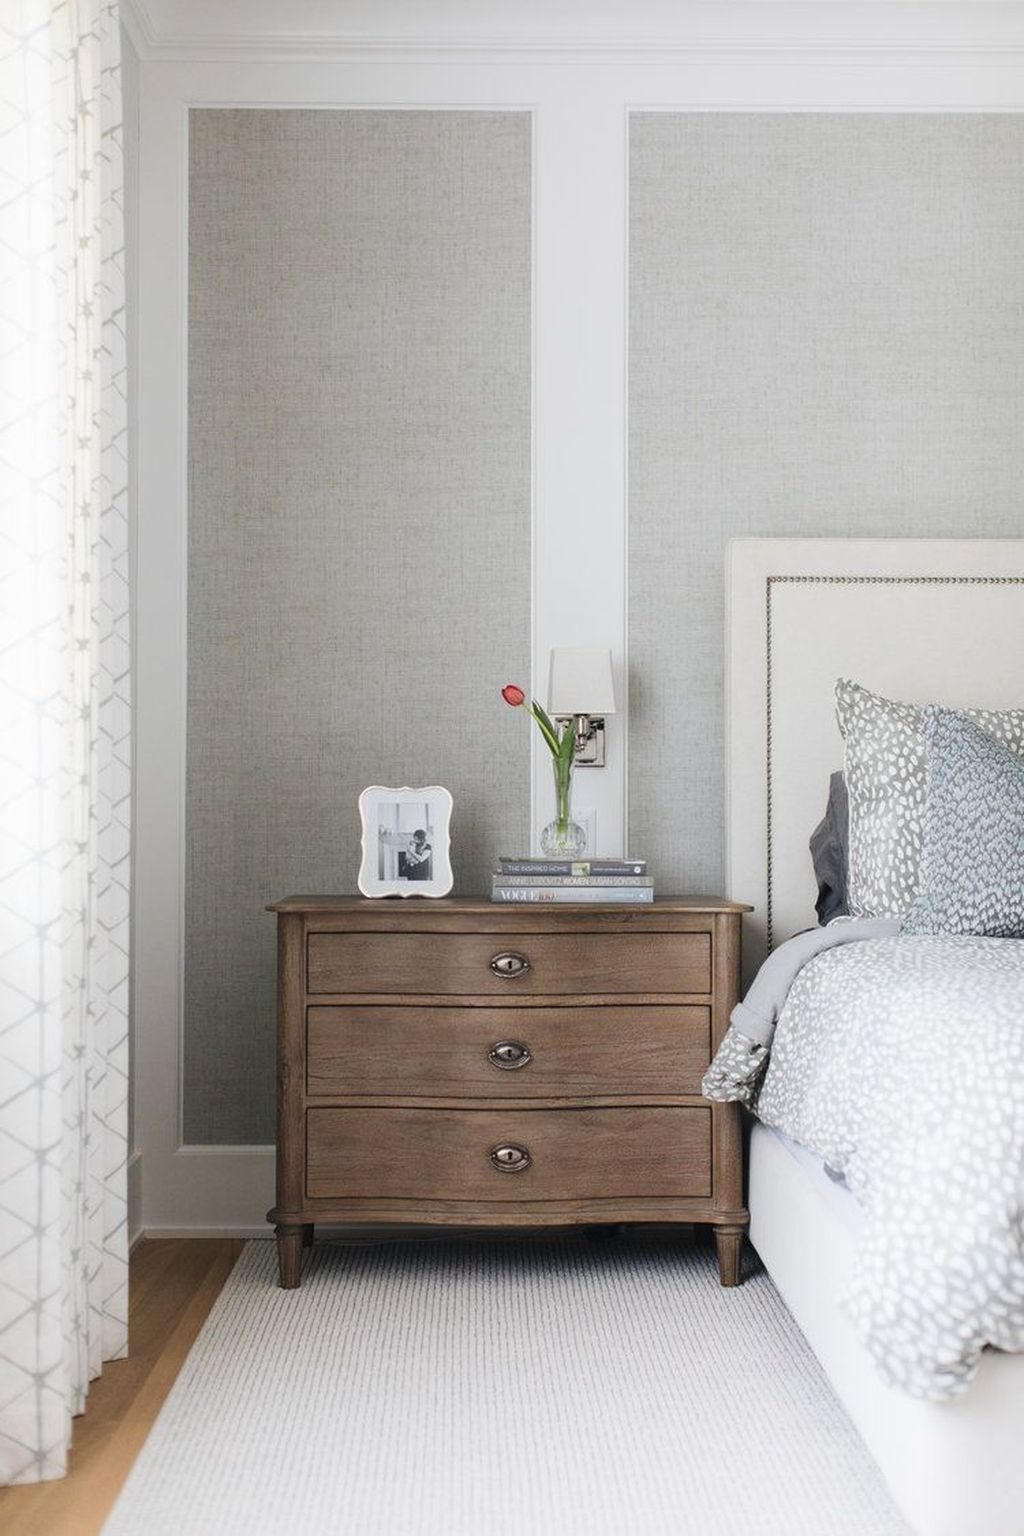 Best Bedroom Wallpaper Decor Ideas That Suitable For Your Family 03